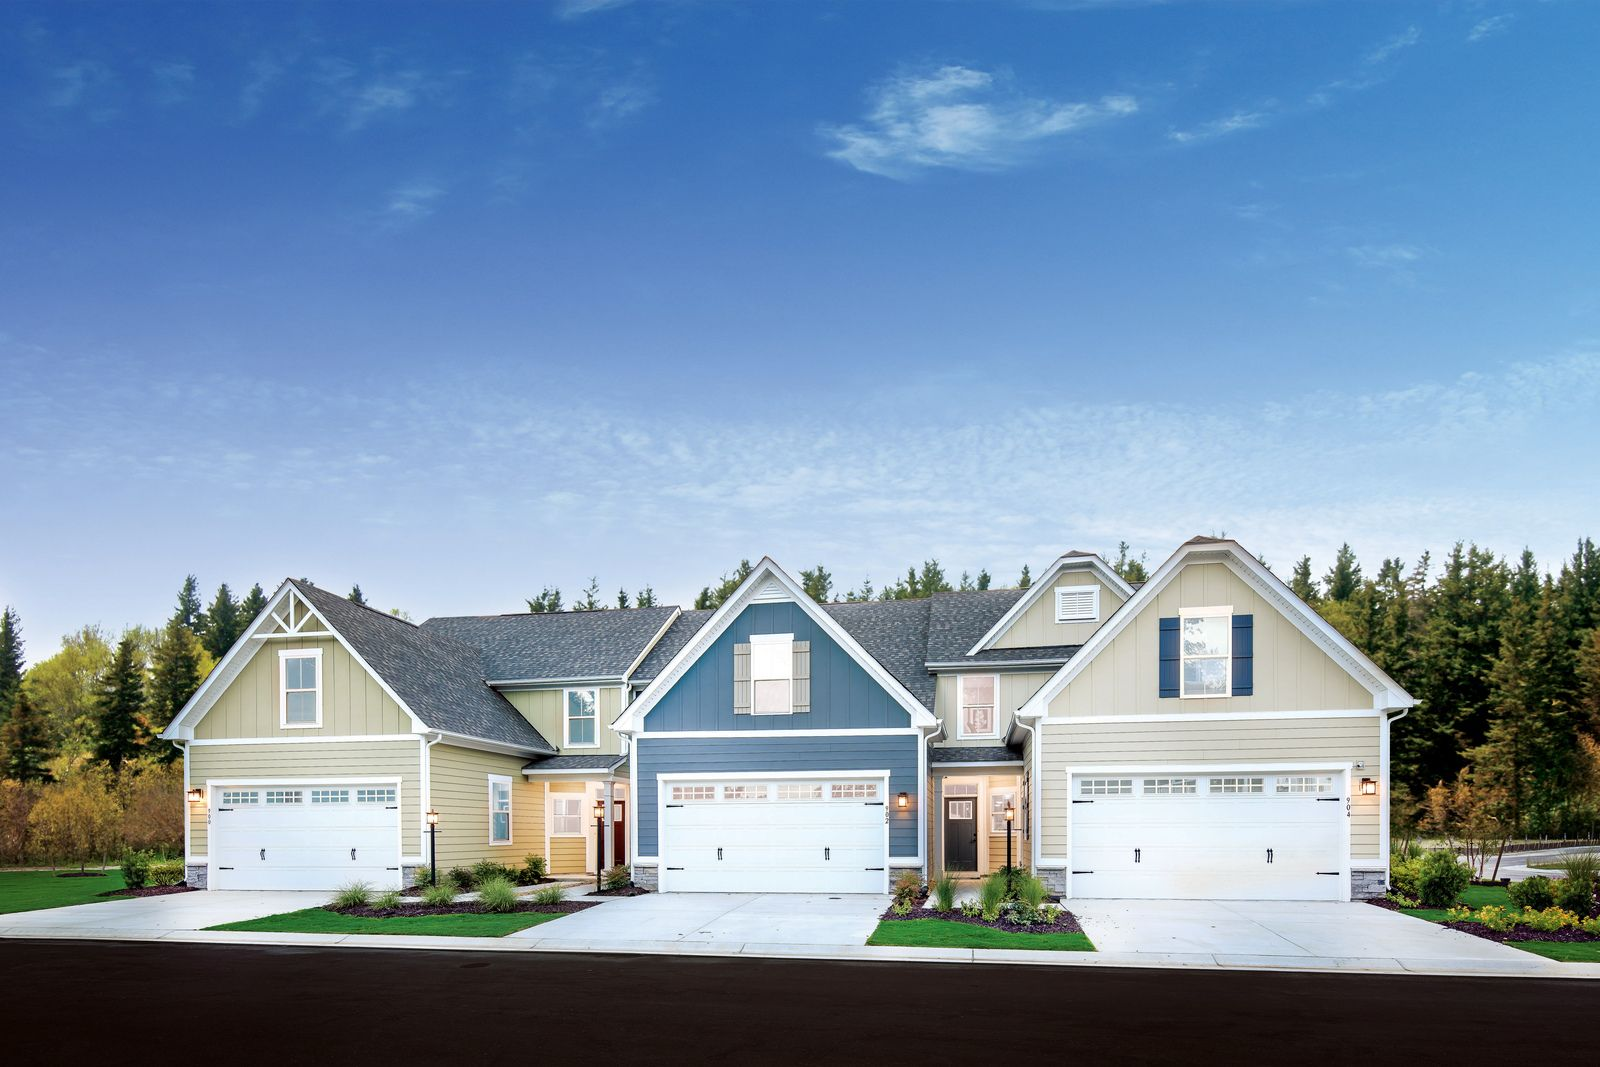 VILLAS AT PORT ROYAL - COMING SPRING 2021:New townhomes featuring 1- & 2-car garages, modern, open concepts, private backyards, & master-down options only 2 mi to Saturn Pkwy - all from thelow $300s.Join the VIP list today!